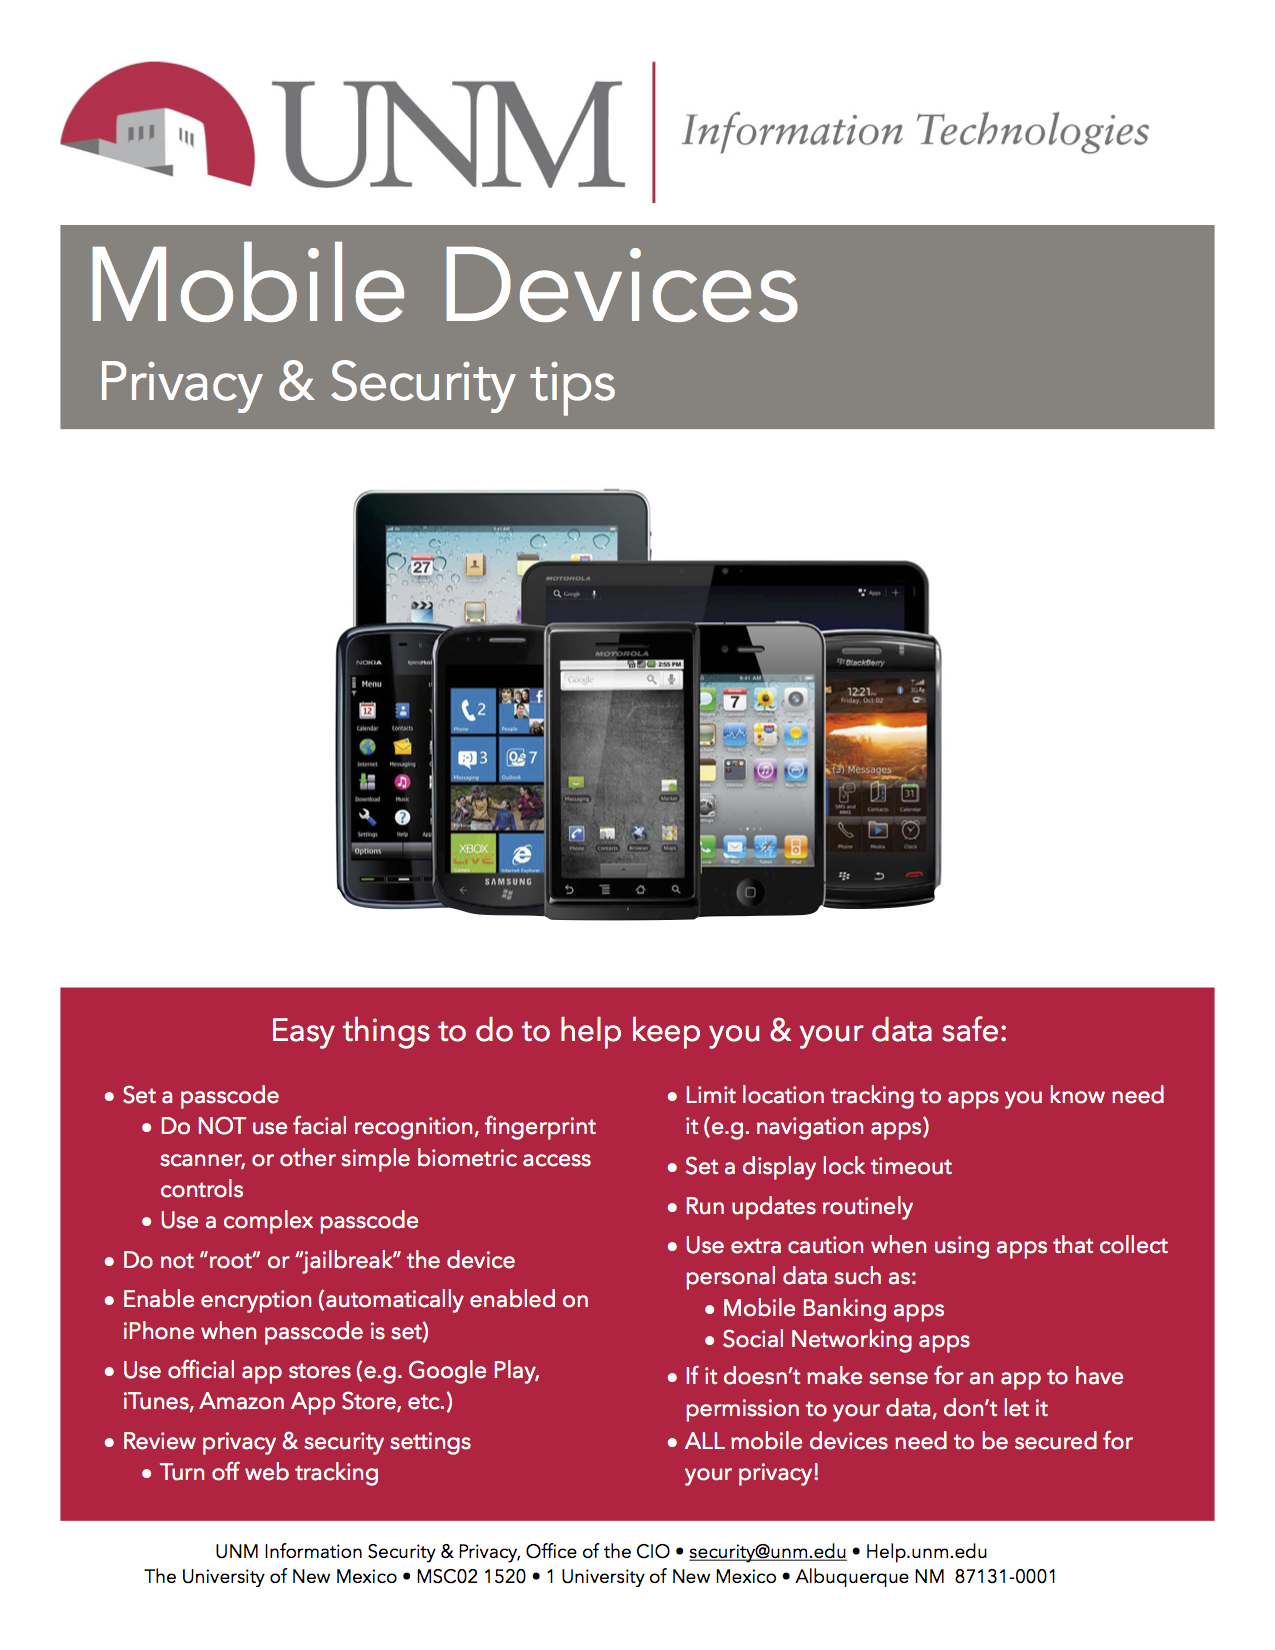 Media information security privacy office the university of new mexico - Office for mobile devices ...